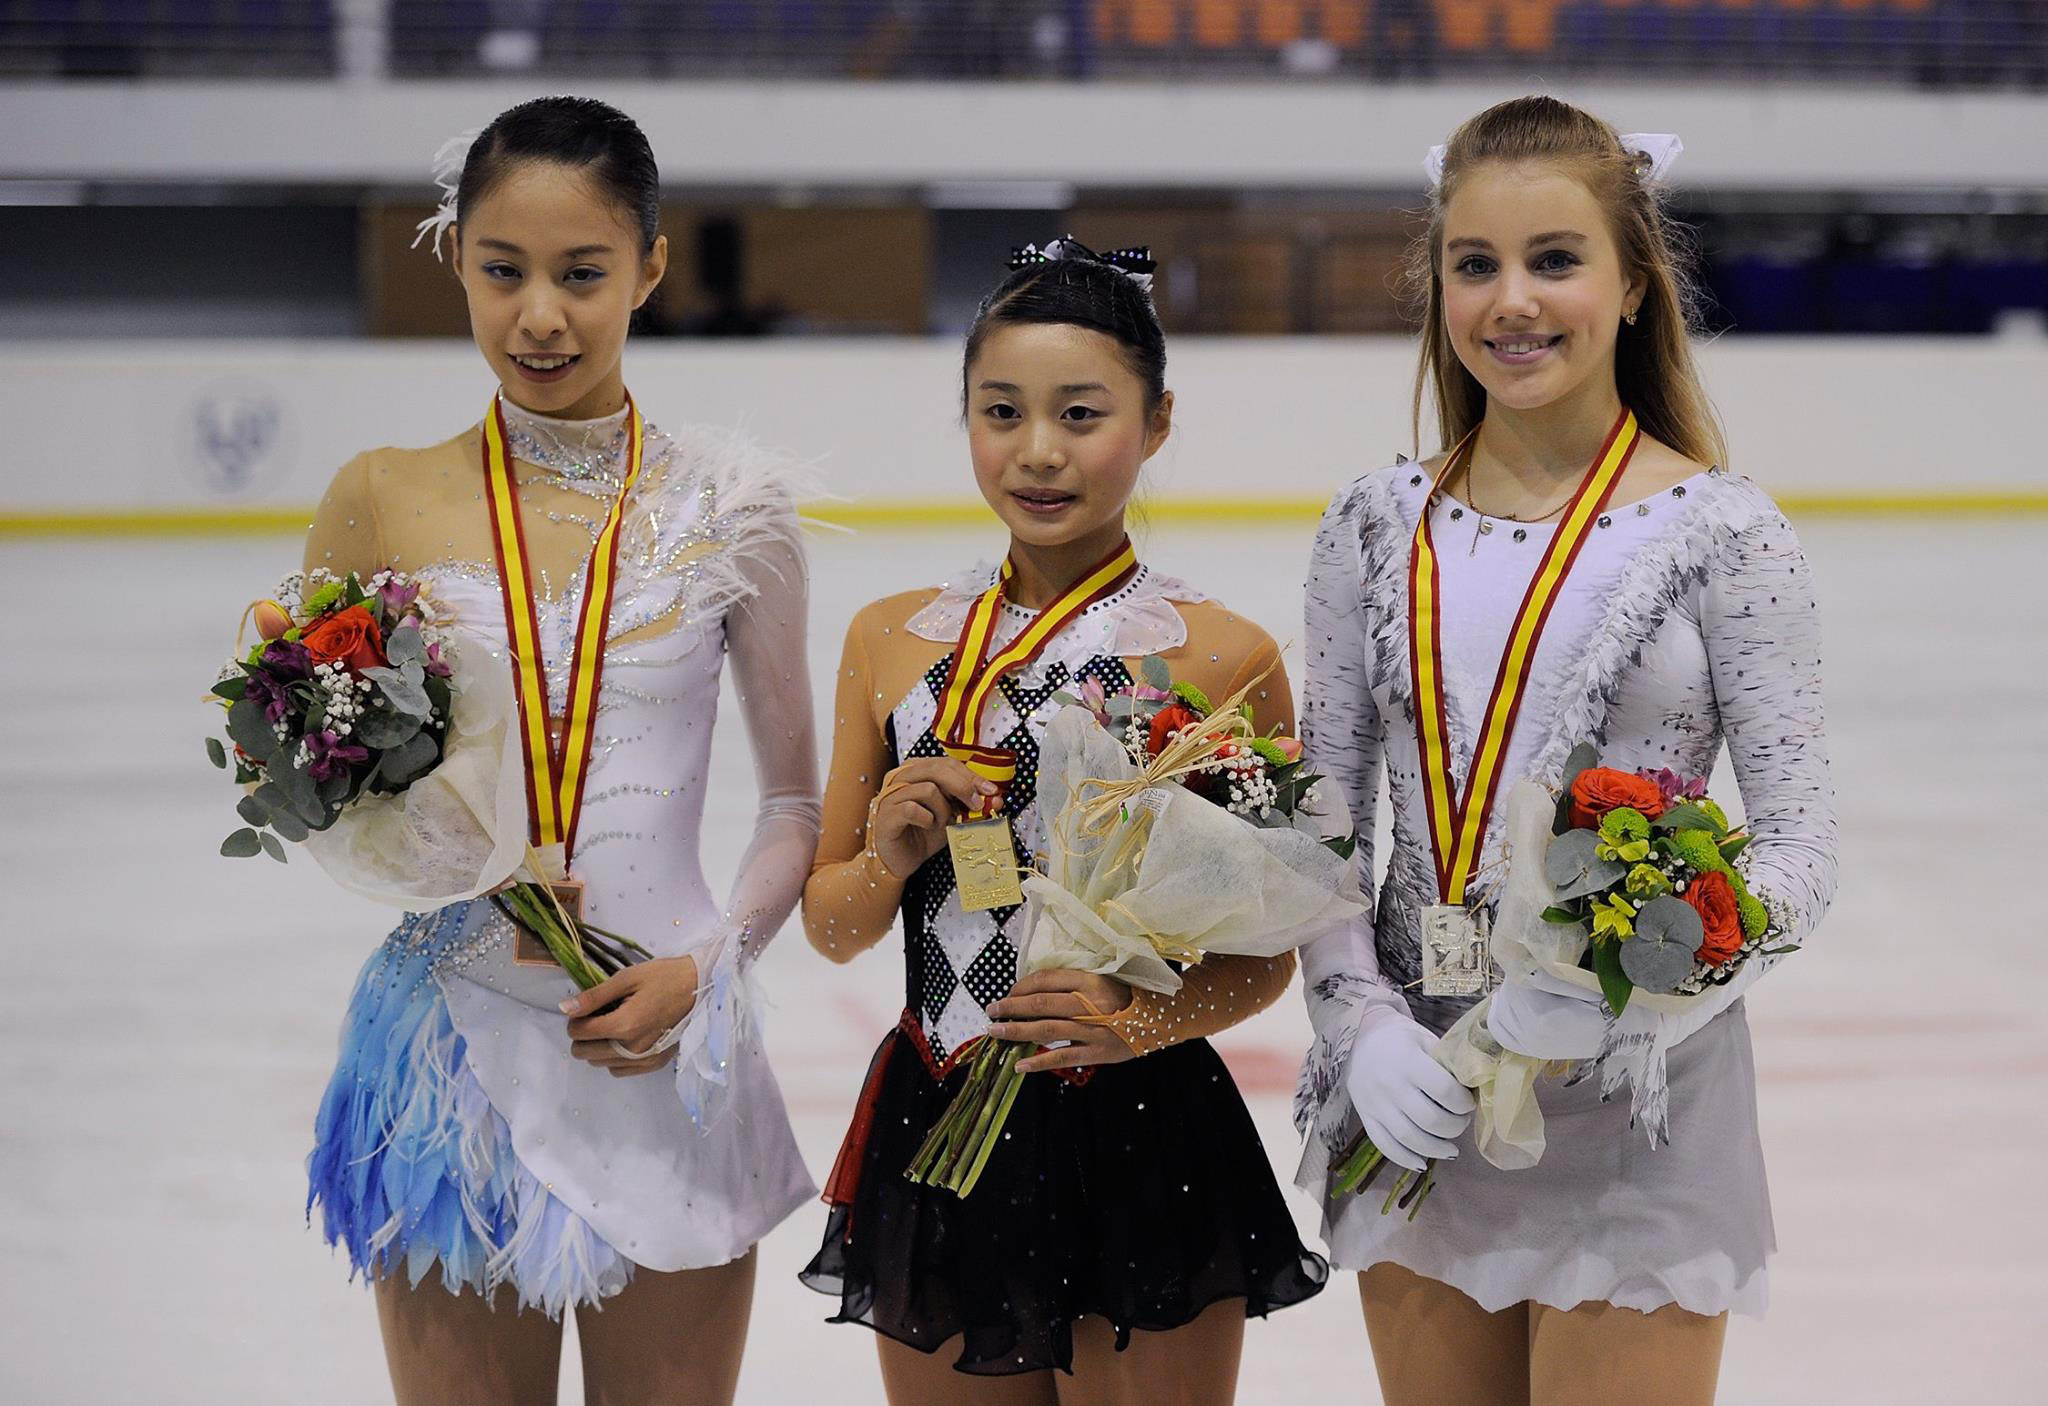 Yuna Shiraiwa (center) poses with her gold medal alongside Yura Matsuda (left) and Russia's Alisa Fedichkina after winning the Junior Grand Prix in Logrono, Spain, on Friday night. | FACEBOOK / ISU